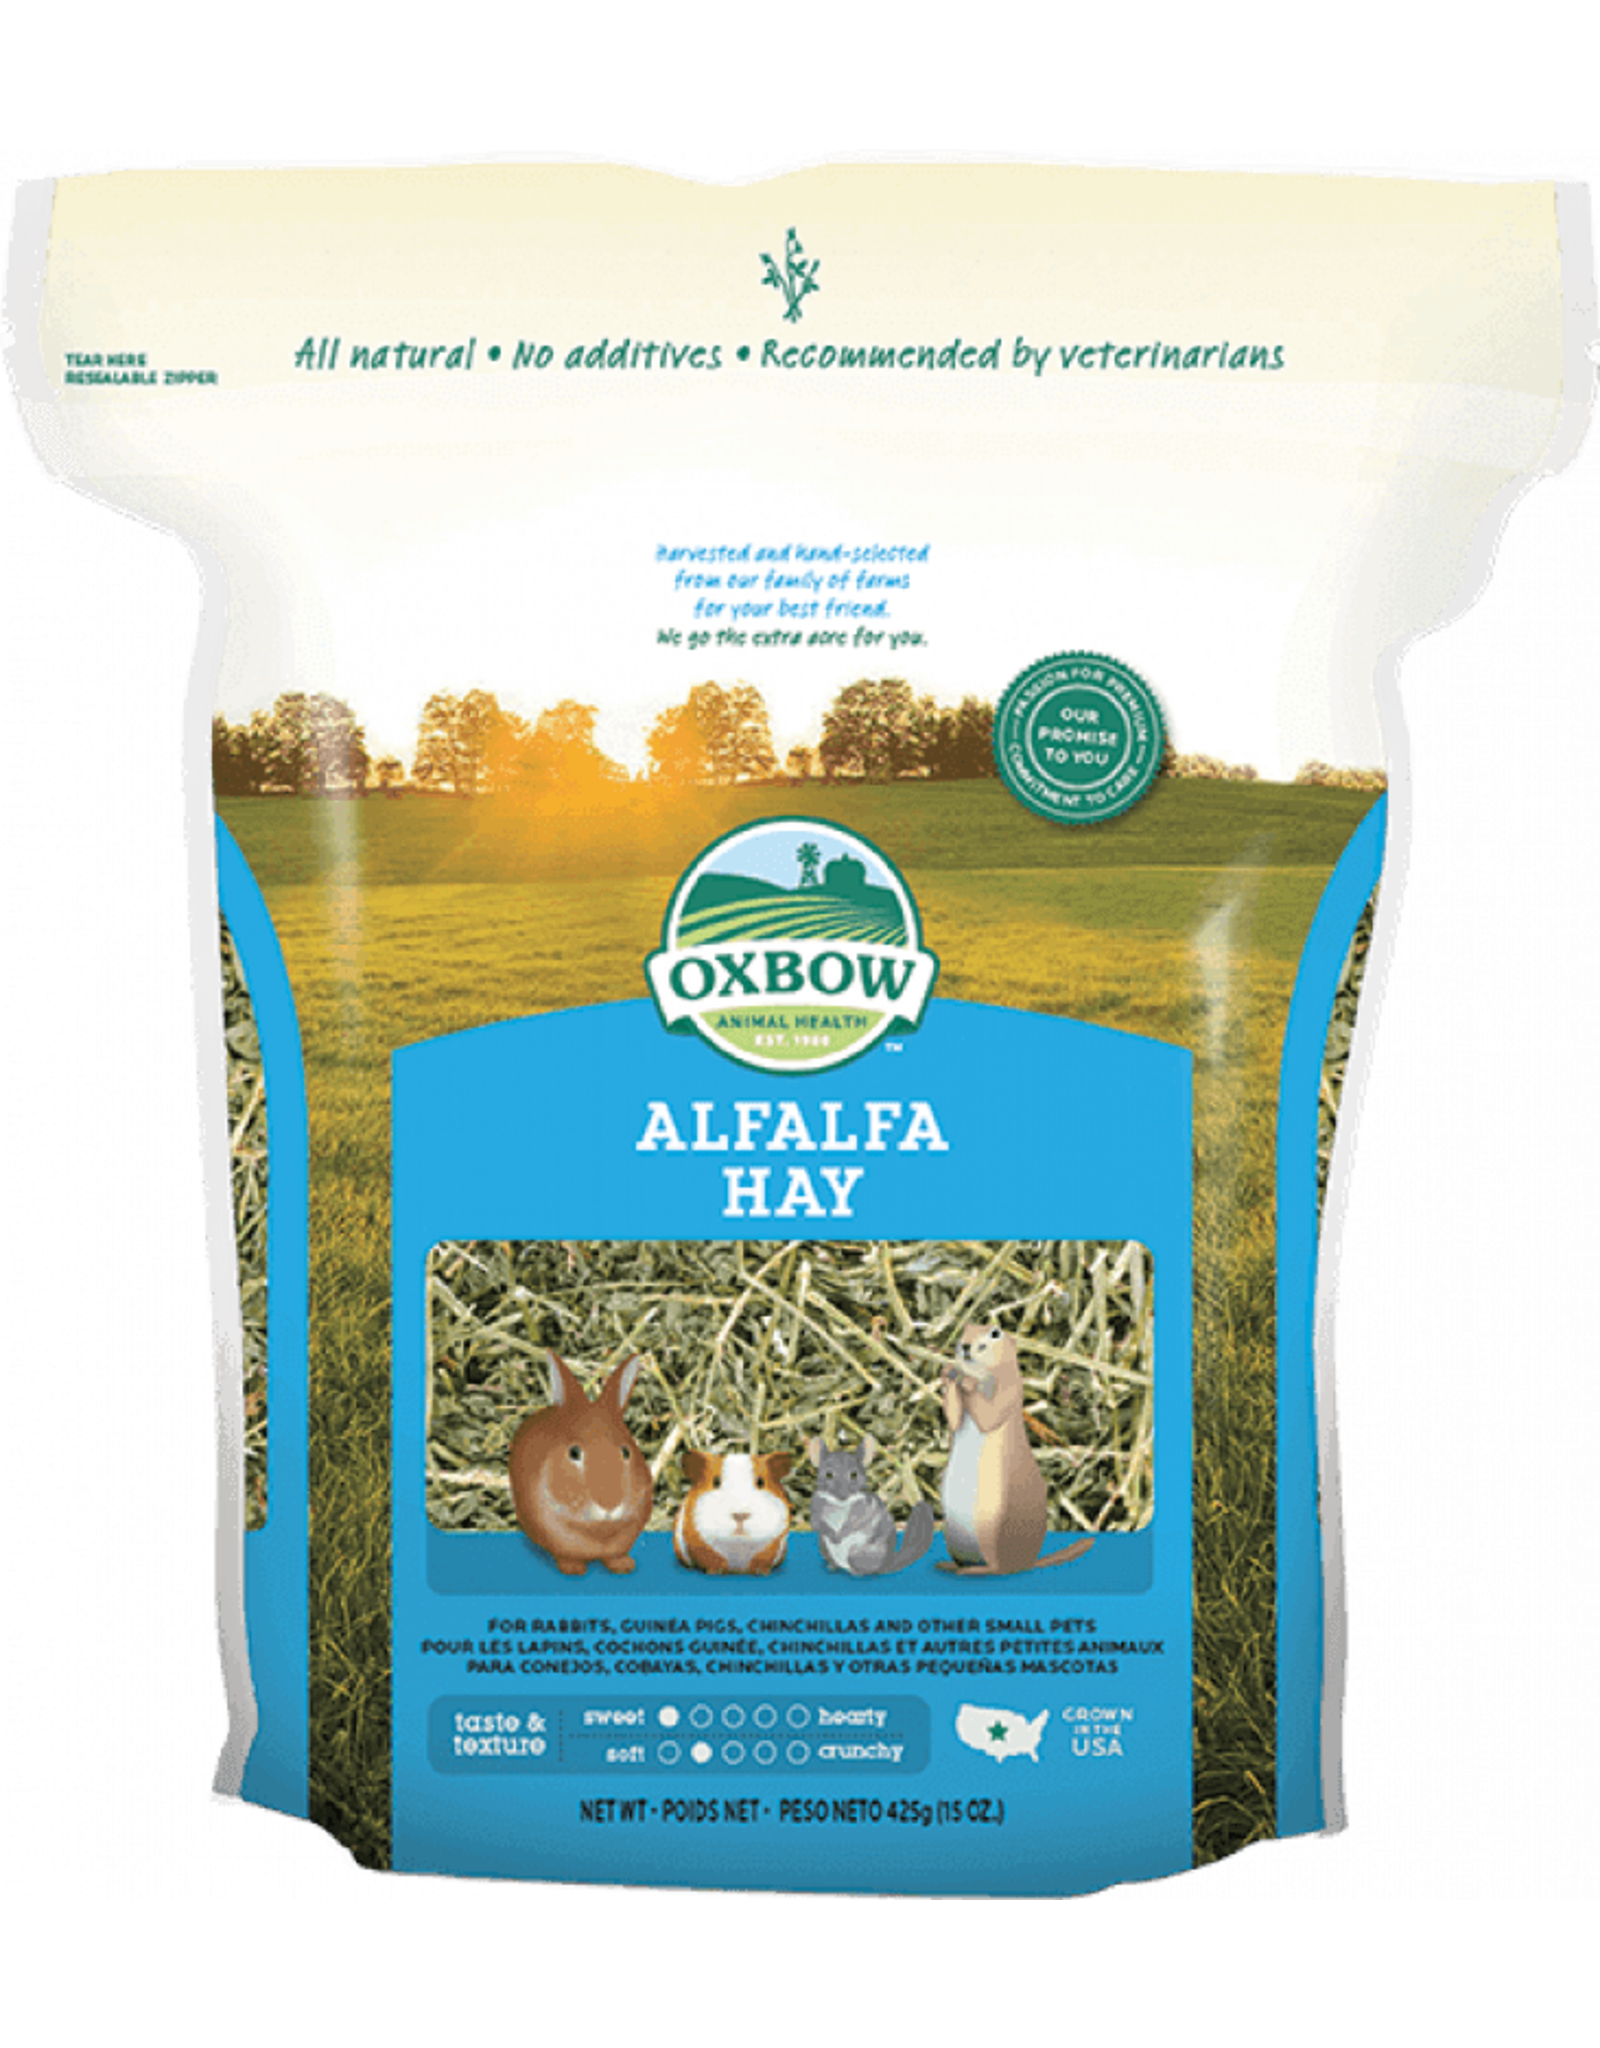 Oxbow Pet Products Oxbow: Alfalfa Hay 15oz